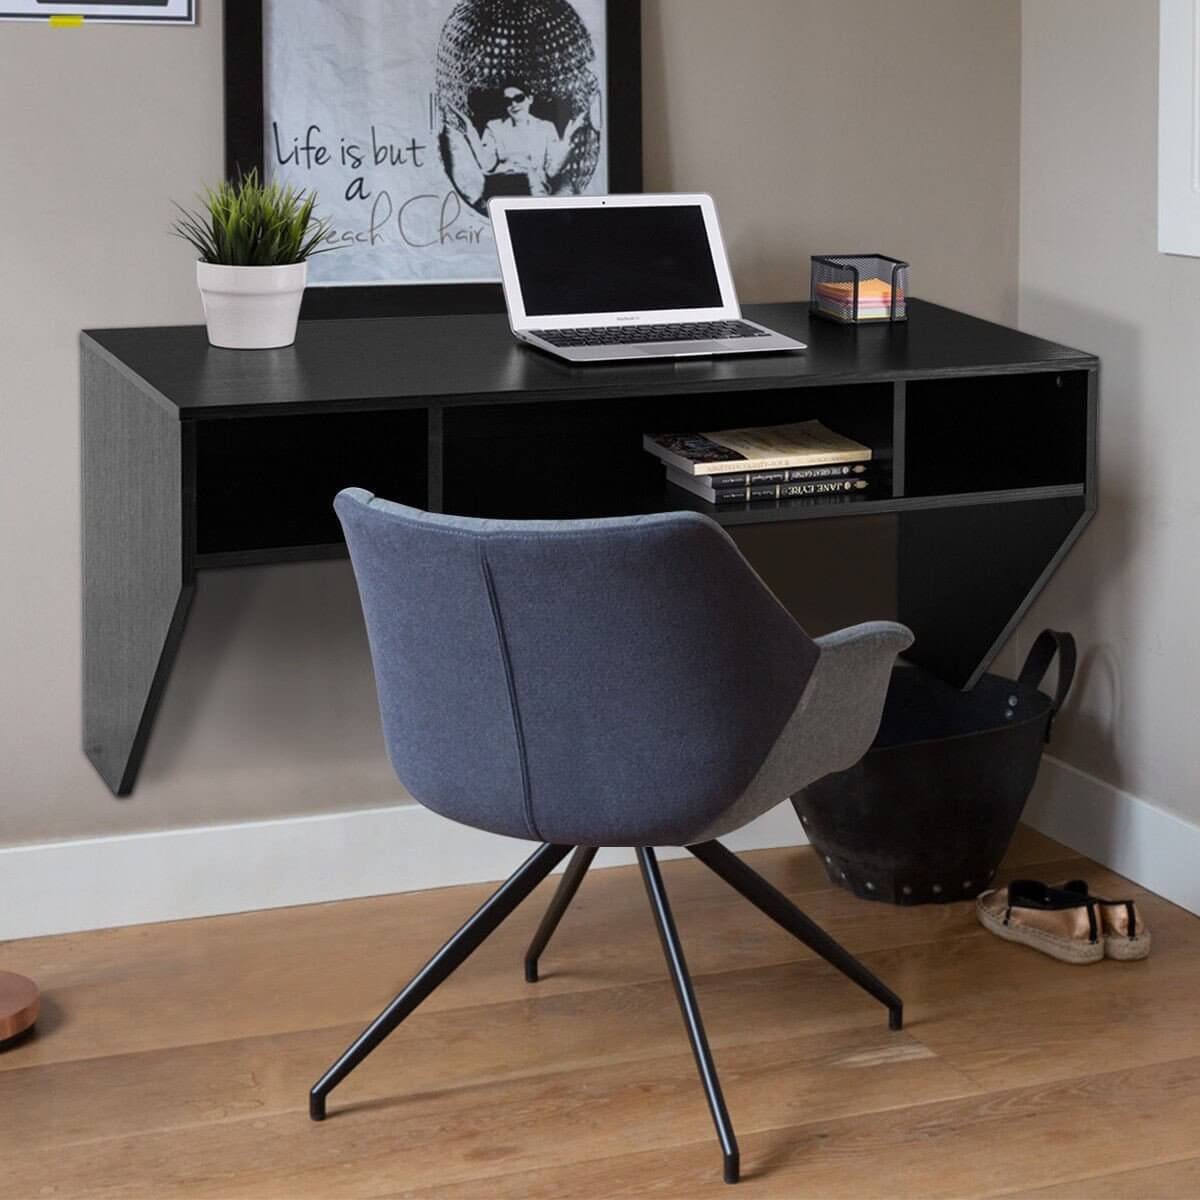 Black Simple Home Office Desk Idea